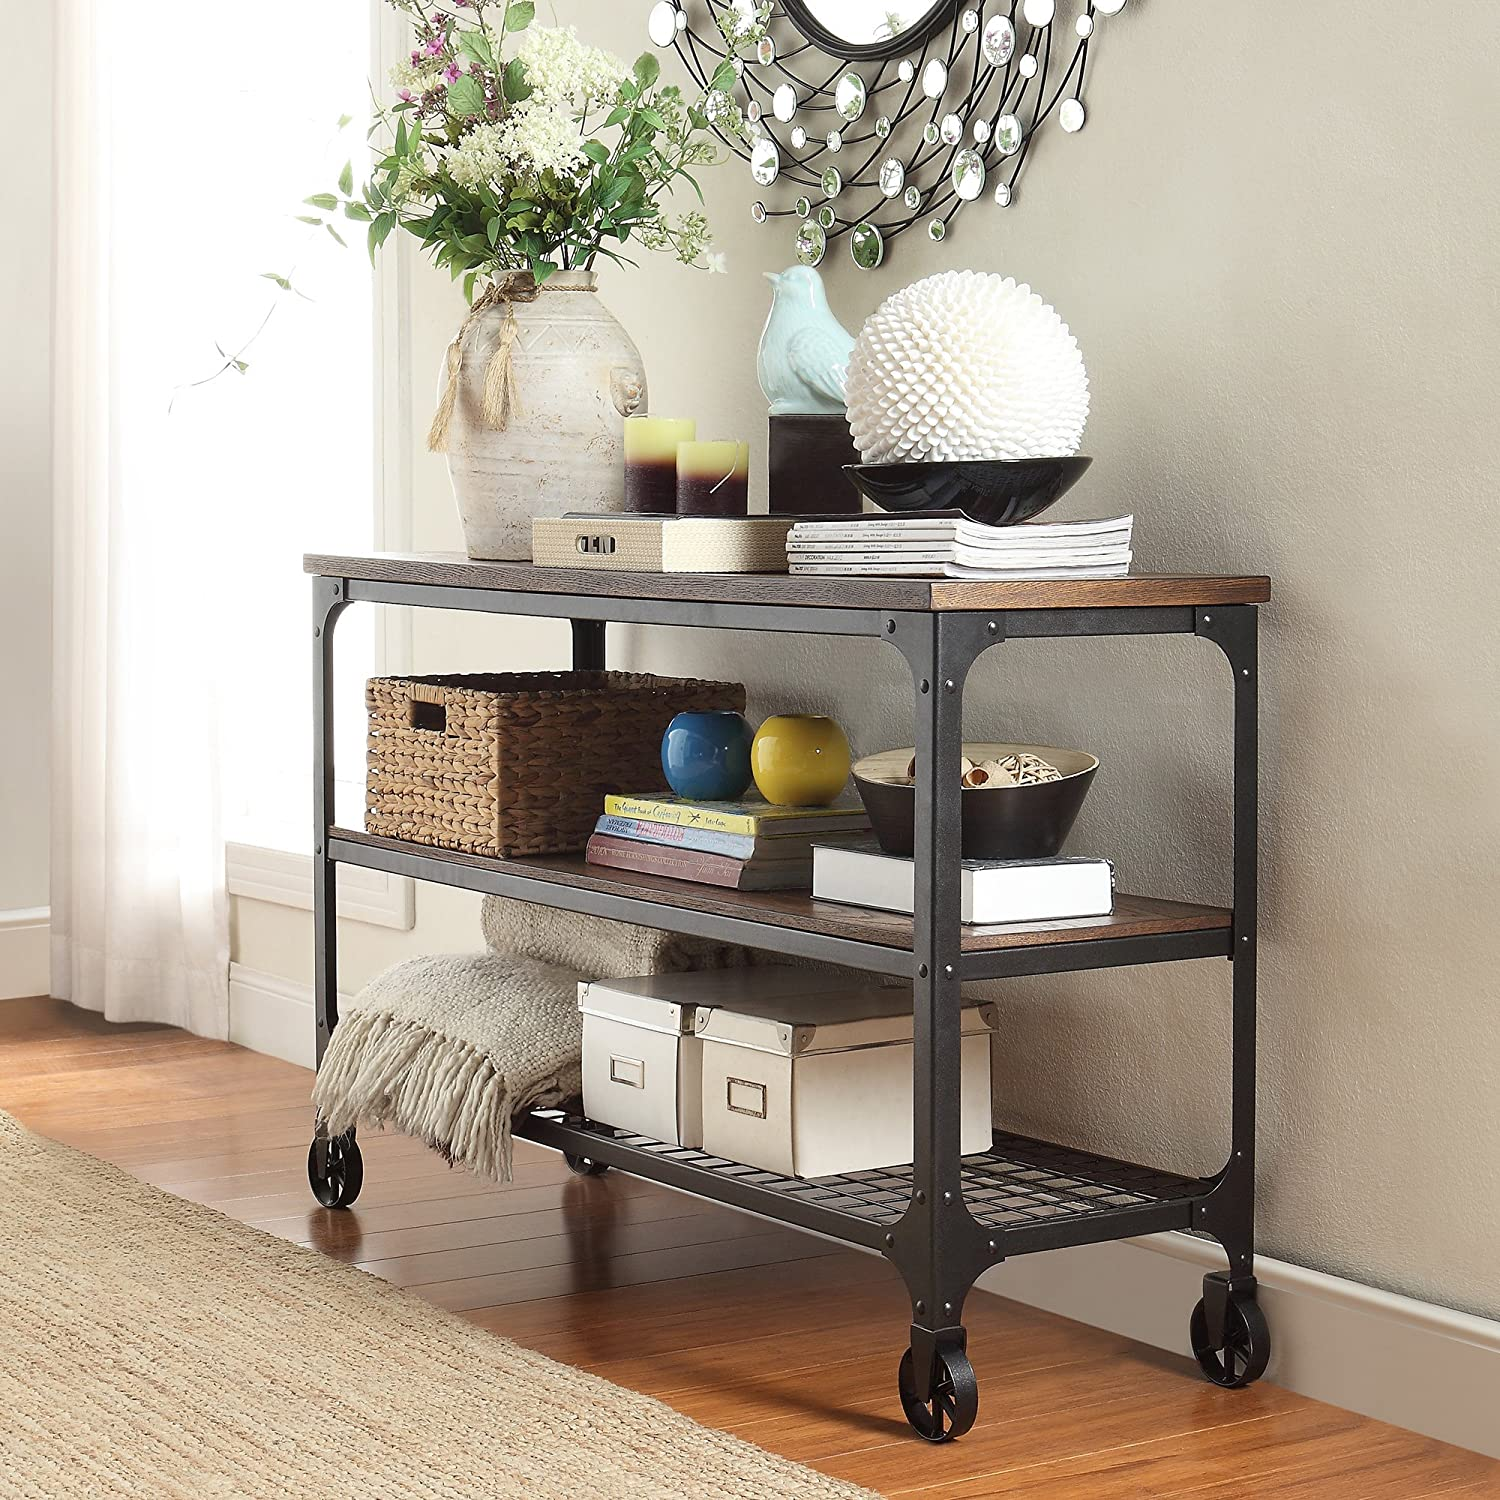 Delicieux Amazon.com: ModHaus Living Modern Industrial Rustic Riveted Black Metal U0026  Wood TV Stand With Decorative Wheels   Includes (TM) Pen (48): Kitchen U0026  Dining